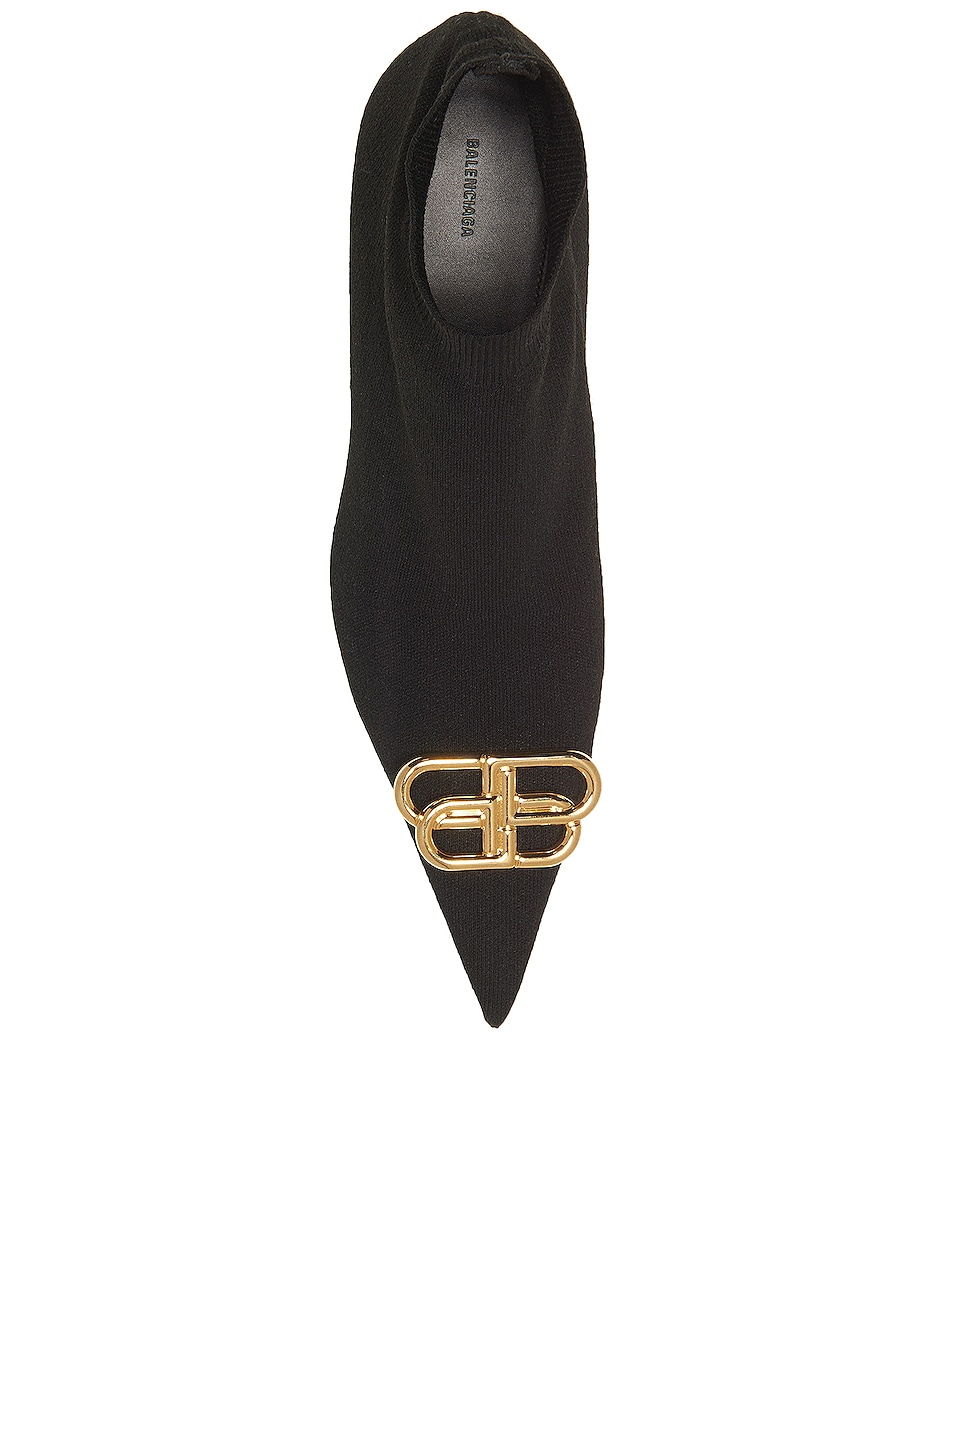 Image 4 of Balenciaga BB Knife Knit Booties in Black & Gold